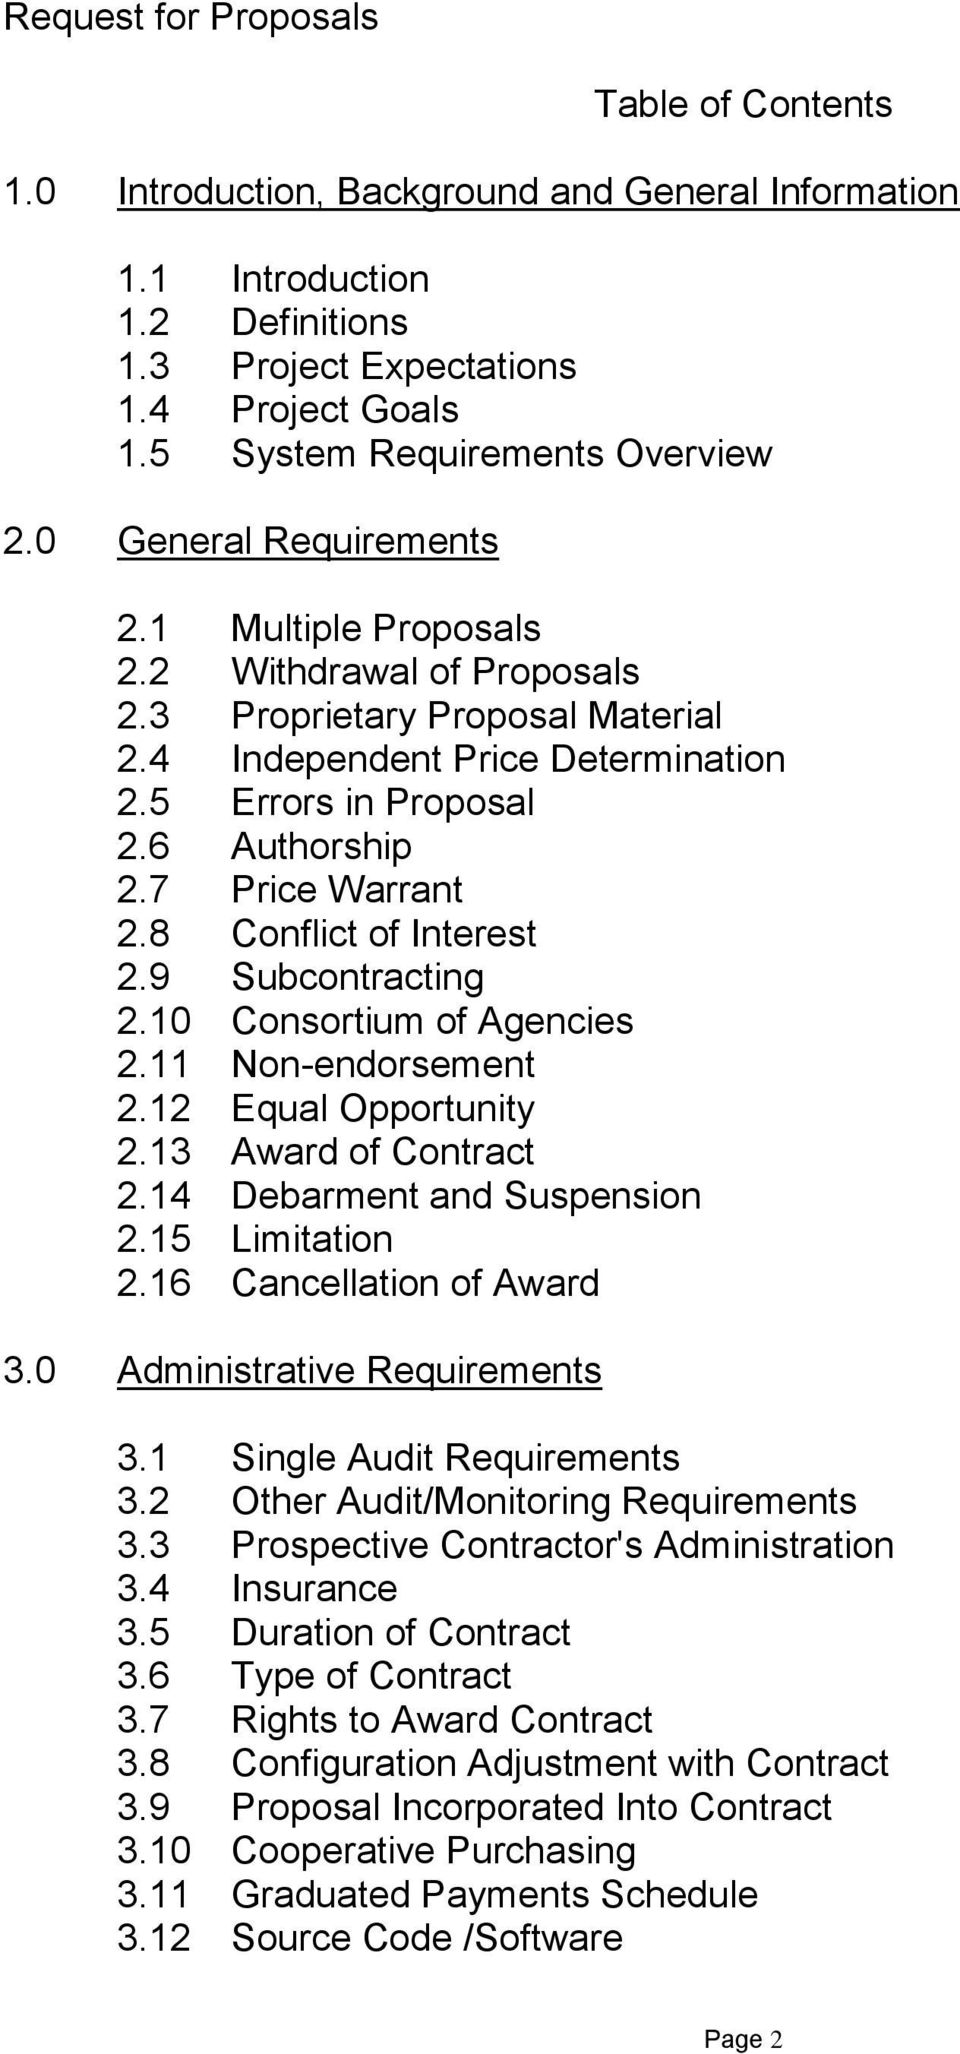 5 Errors in Proposal 2.6 Authorship 2.7 Price Warrant 2.8 Conflict of Interest 2.9 Subcontracting 2.10 Consortium of Agencies 2.11 Non-endorsement 2.12 Equal Opportunity 2.13 Award of Contract 2.